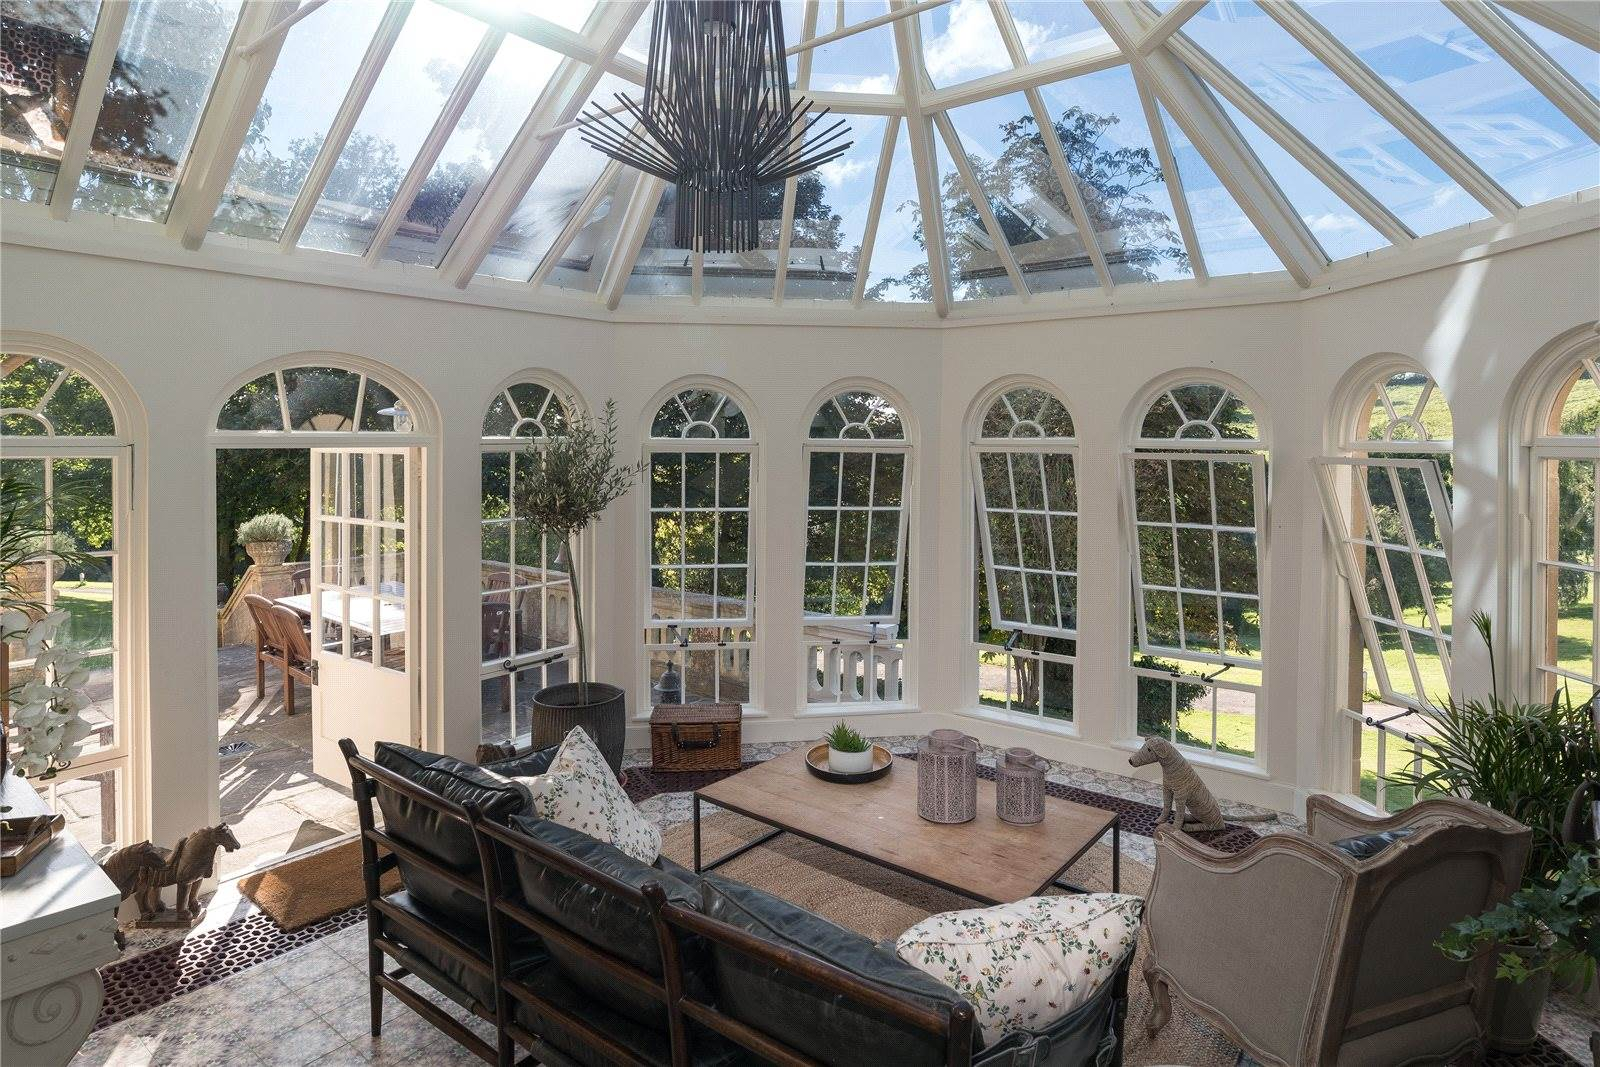 Kelston Knoll House is a Grade II listed Italianate manor with scenic views of the River Avon and the Somerset countryside. At the rear of the house is a wonderful orangery with under-floor heating for year-round use.